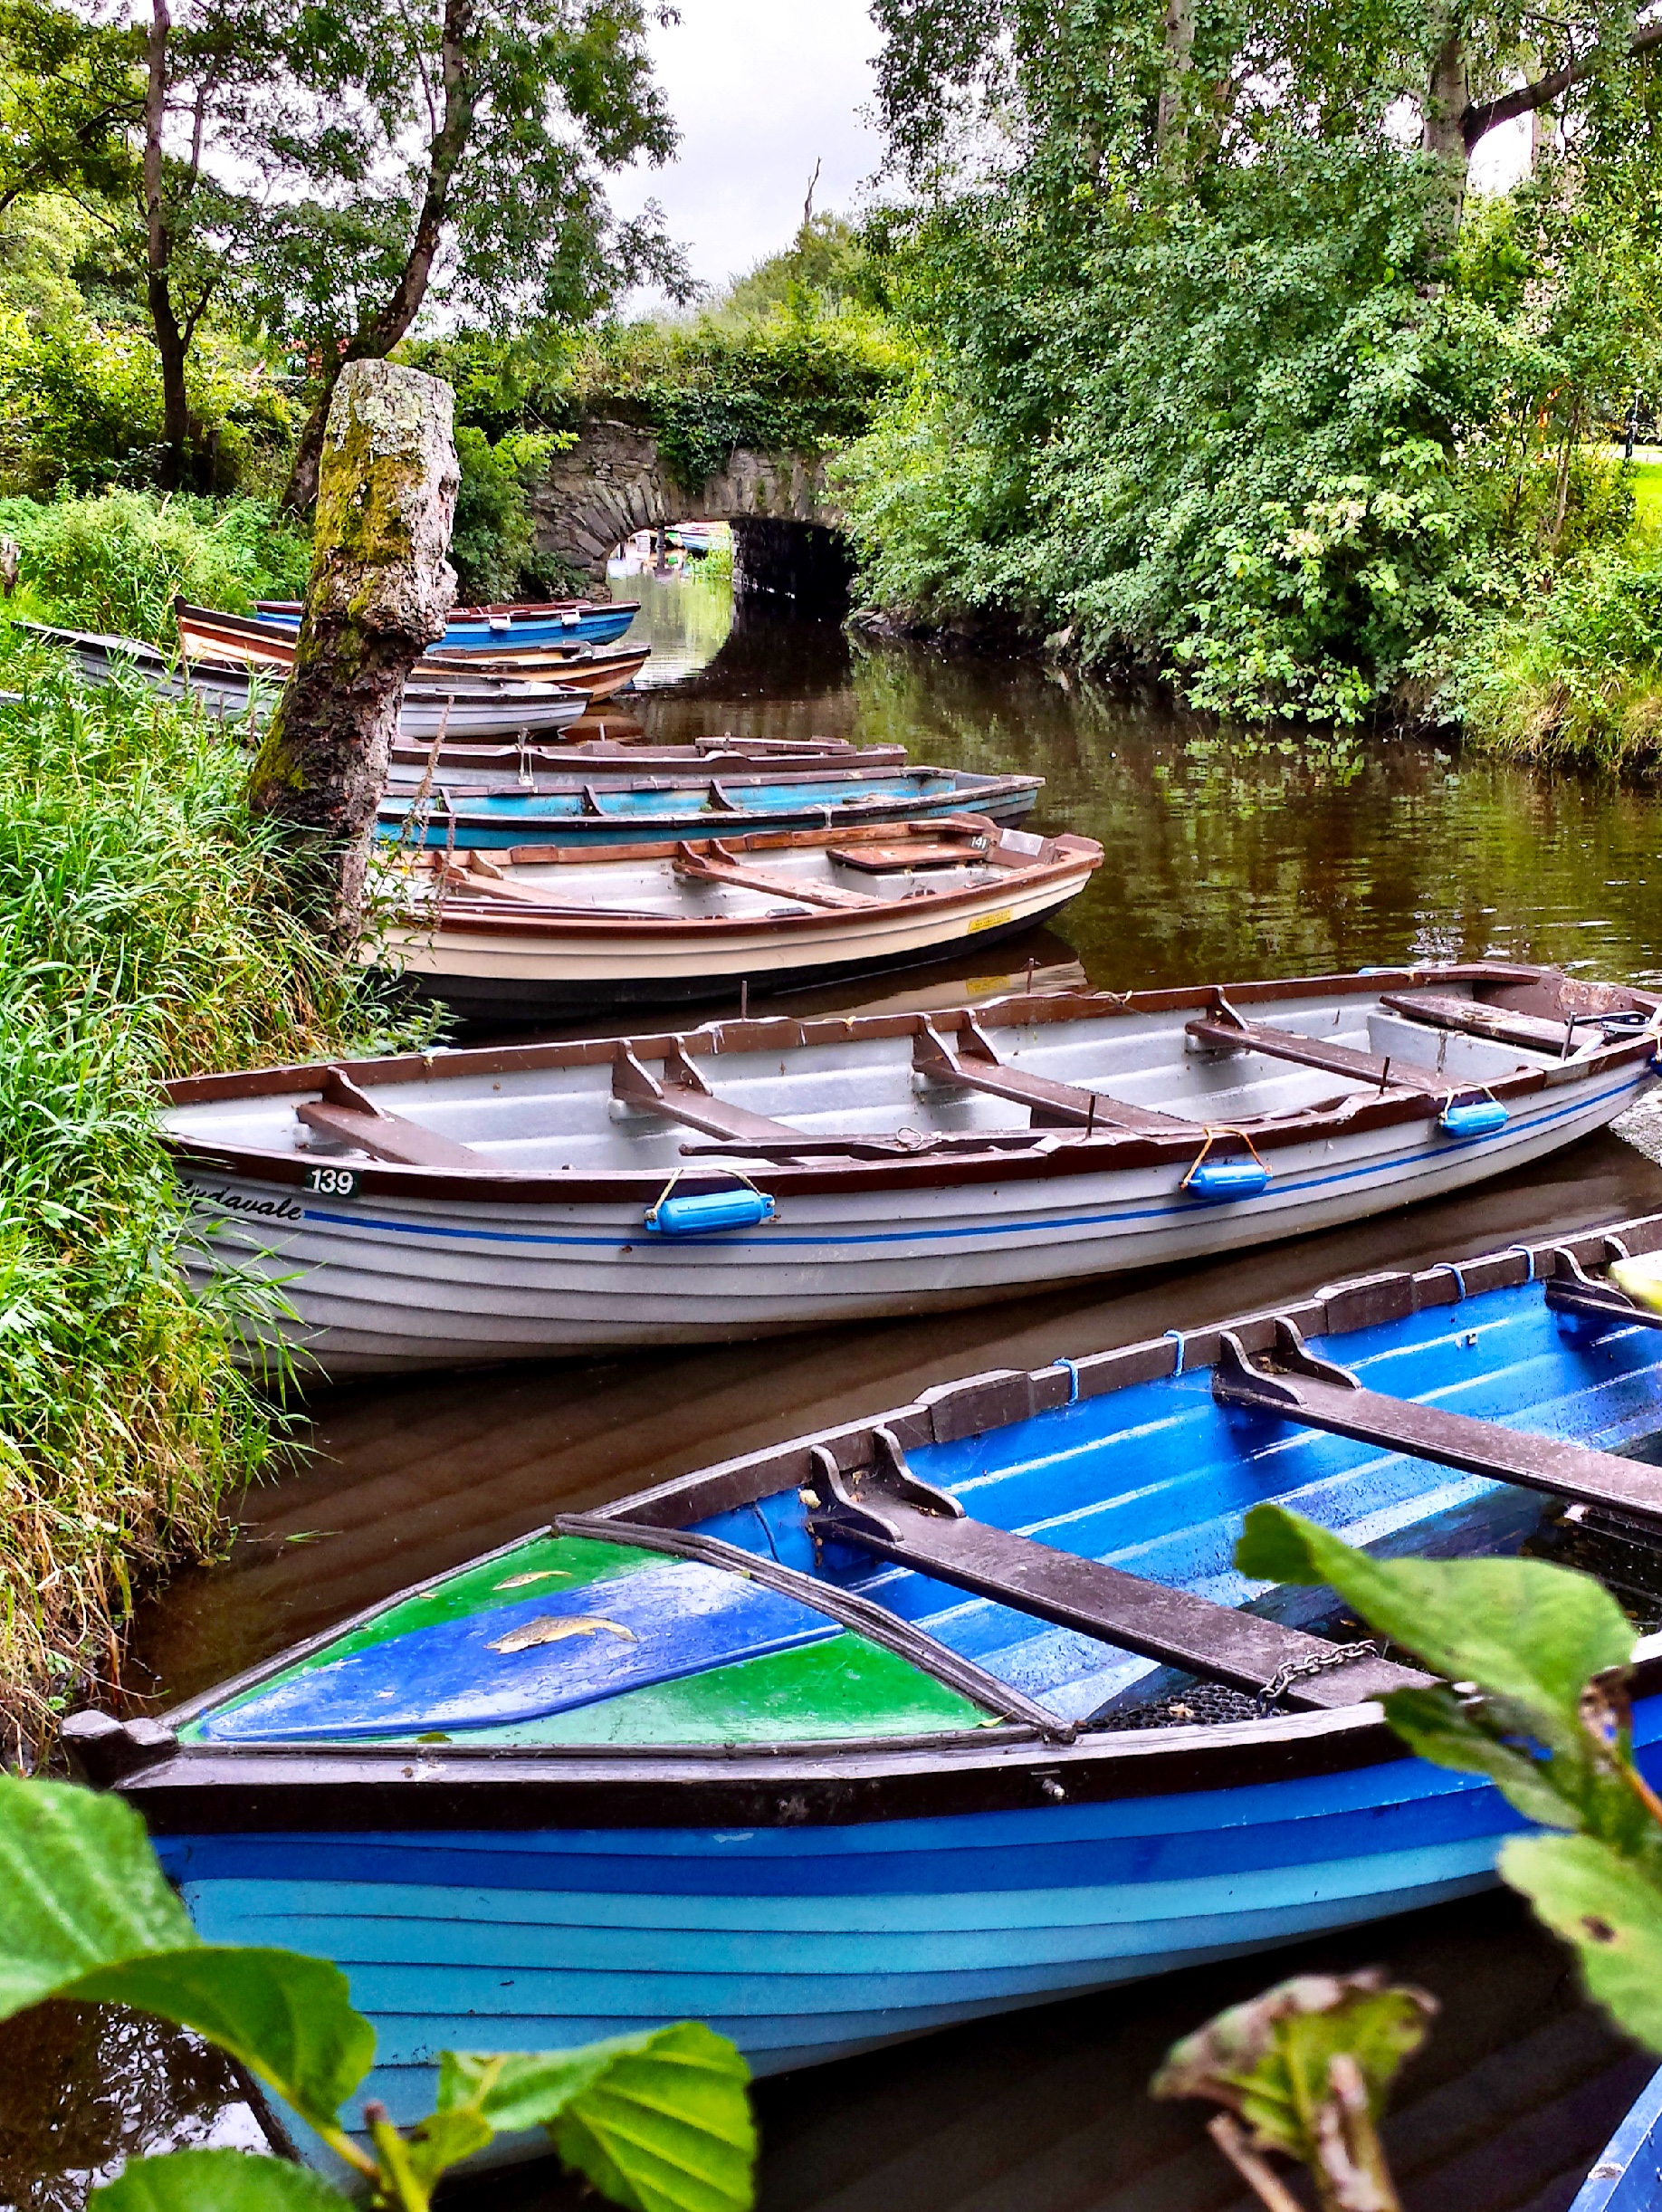 Boats at Ross Castle in Killarney, Ireland